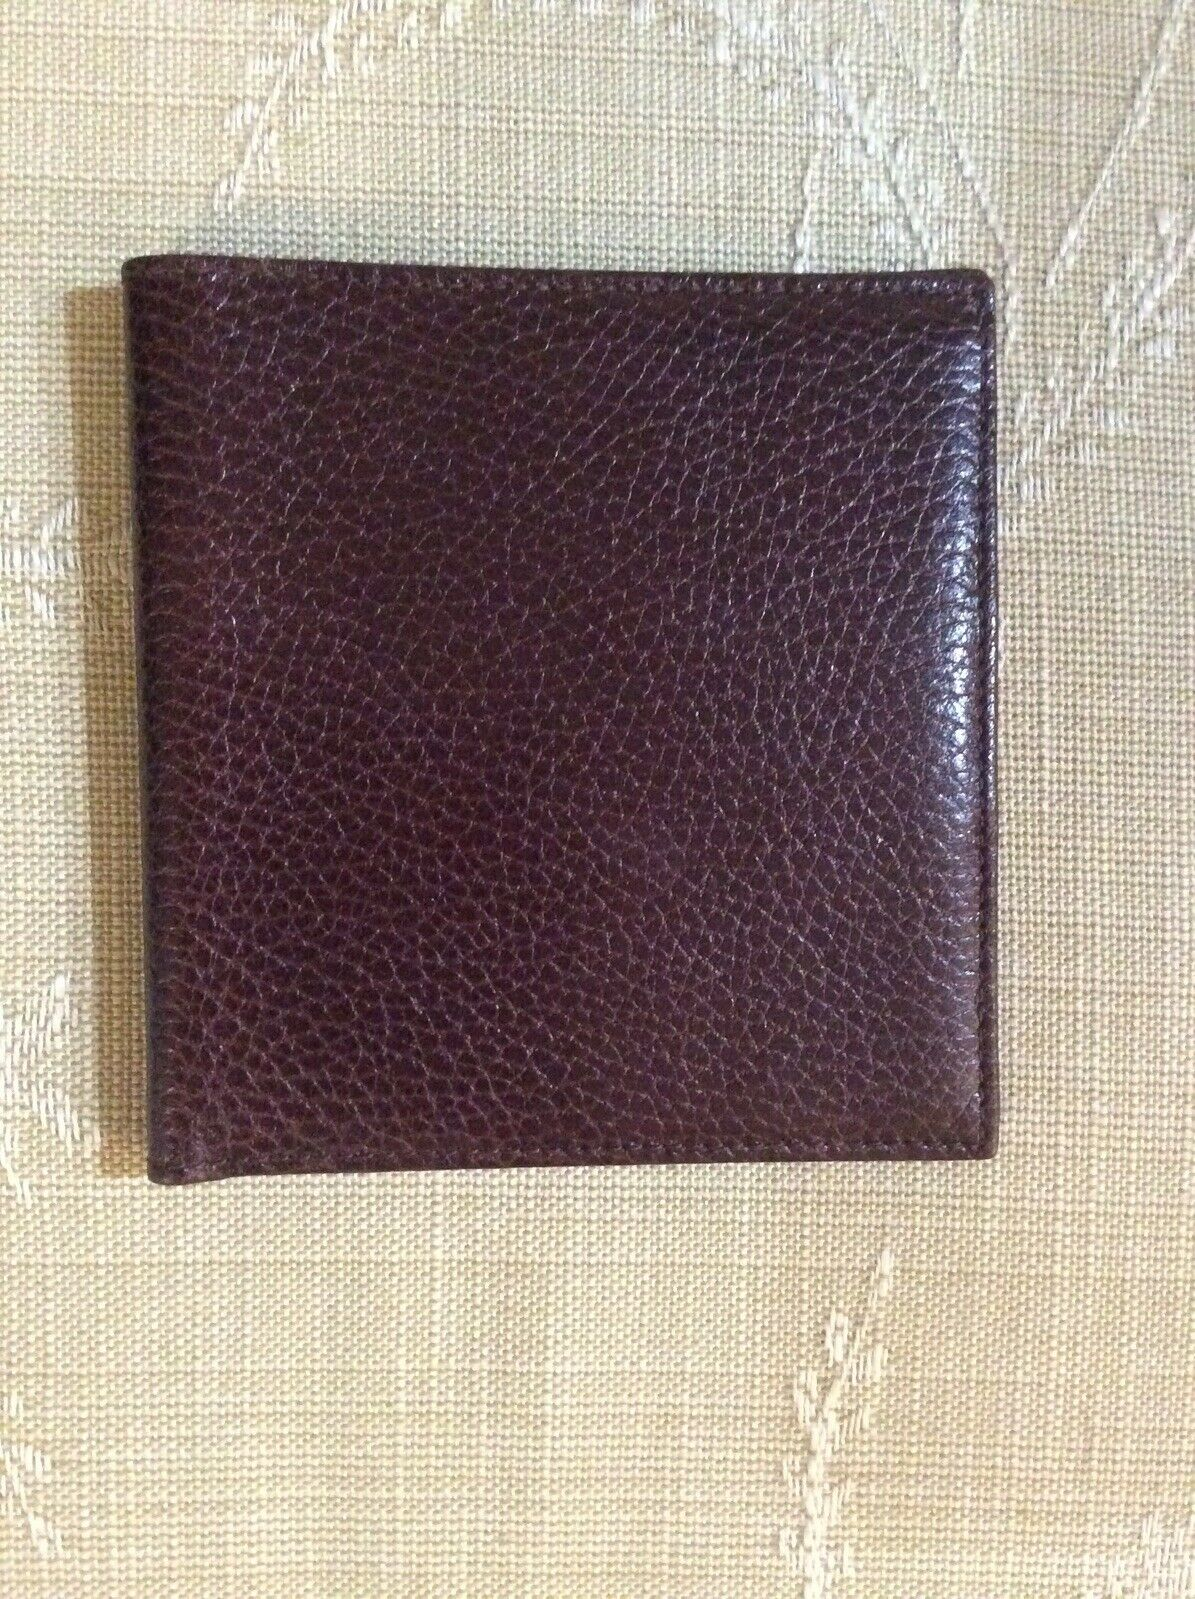 Cross Brand Men's Soft Pebbled Brown Leather Wallet, Made In Italy